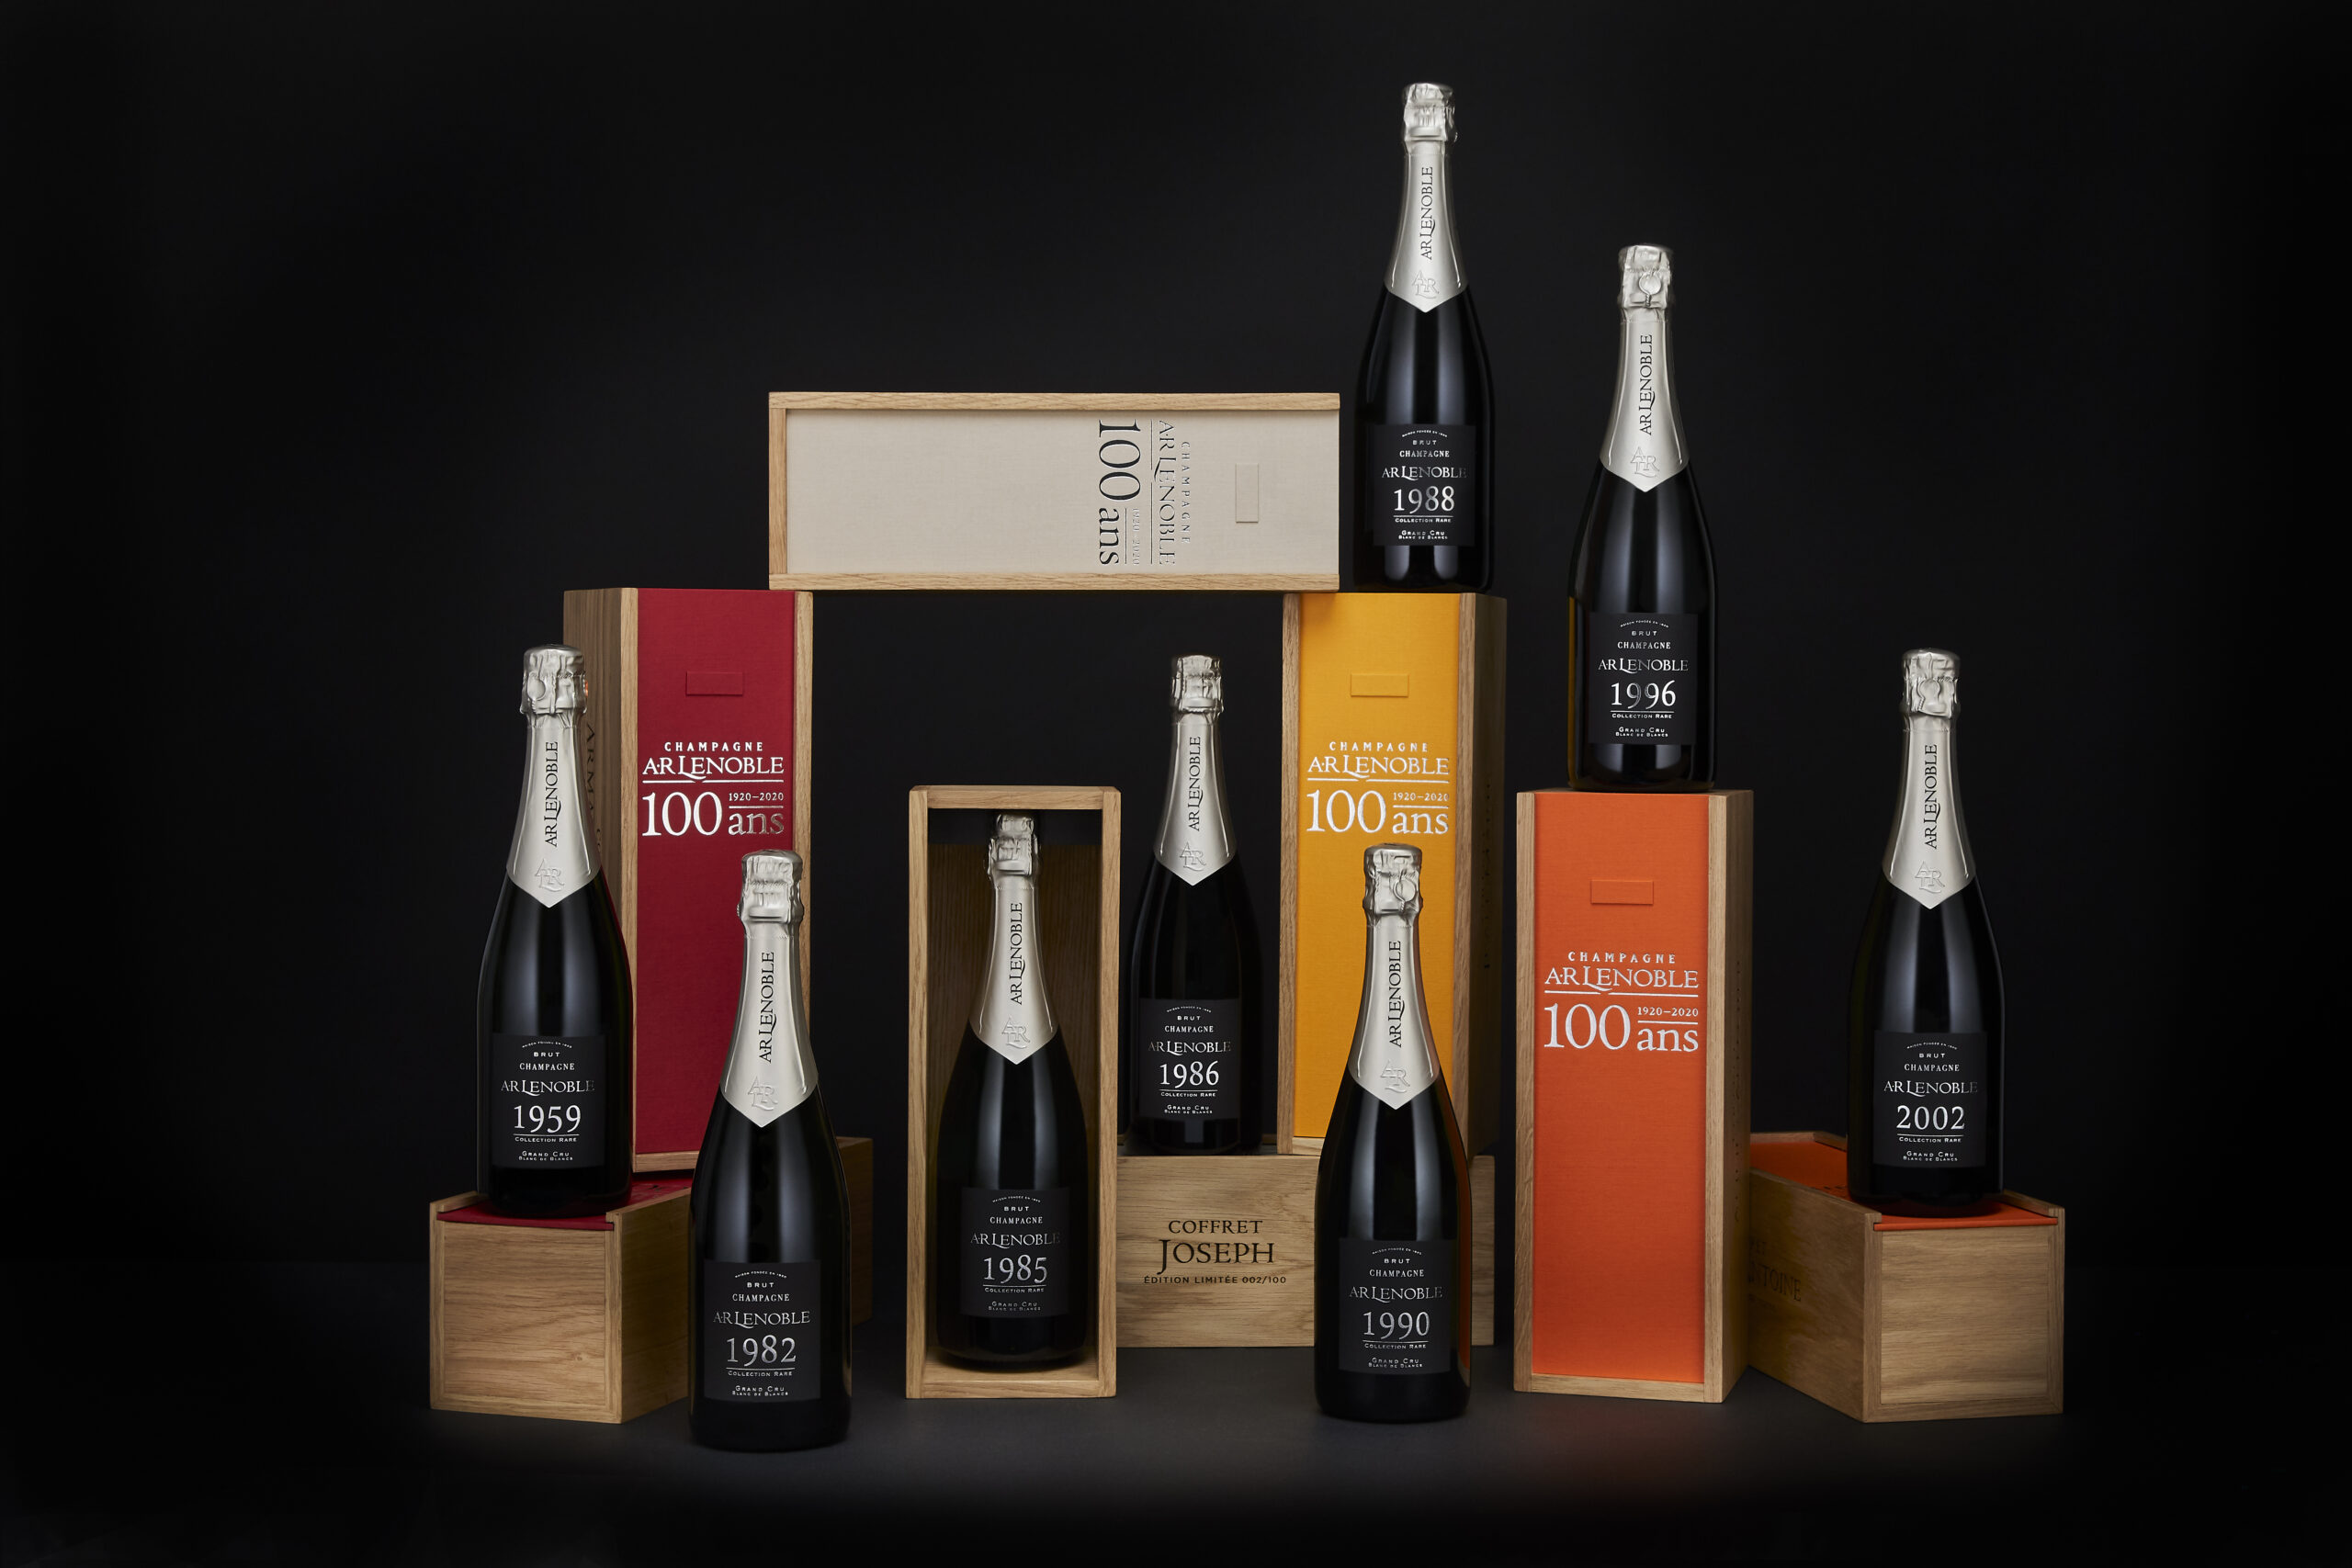 To celebrate our centenary, we have released 8 amazing vintages